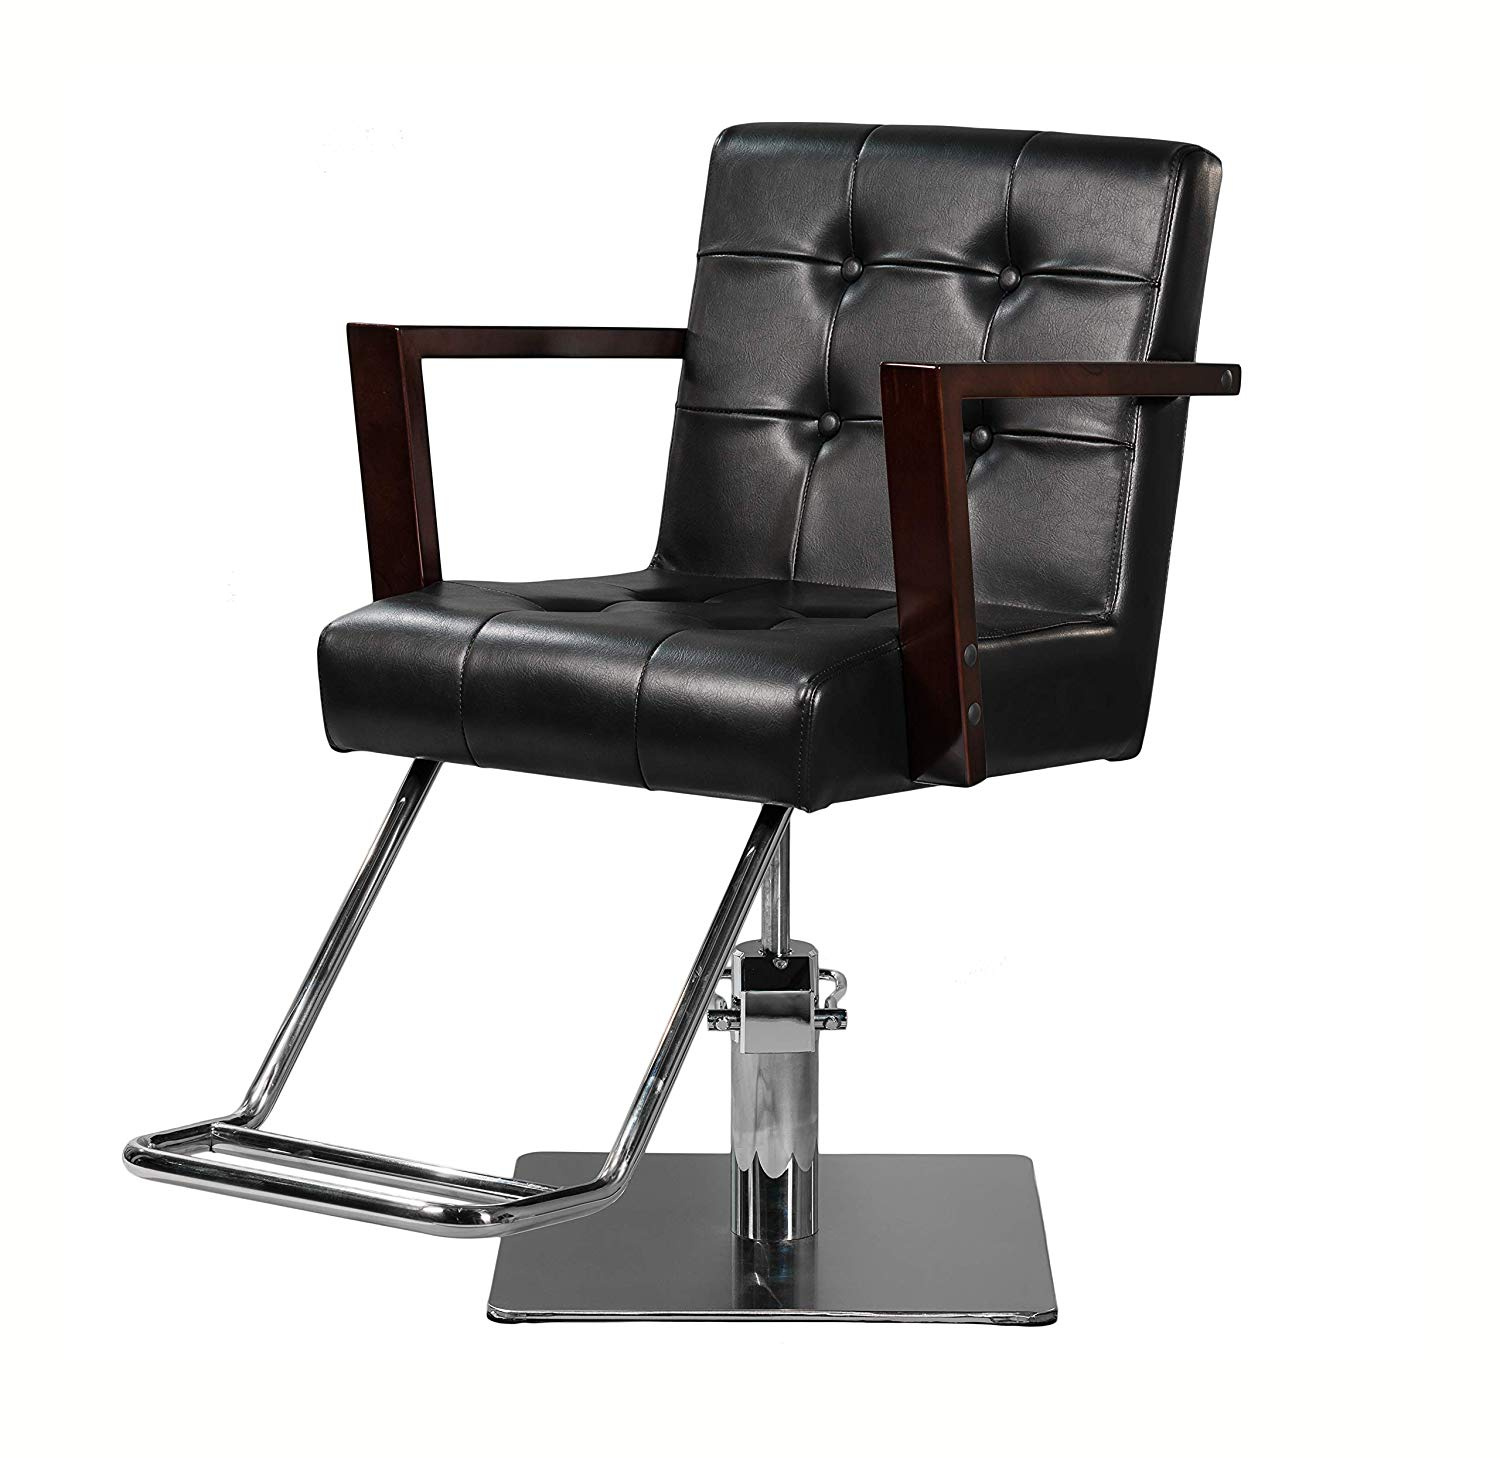 Tremendous Fauteuil Black Hydraulic Barber Styling Chair Hair Beauty Interior Design Ideas Ghosoteloinfo